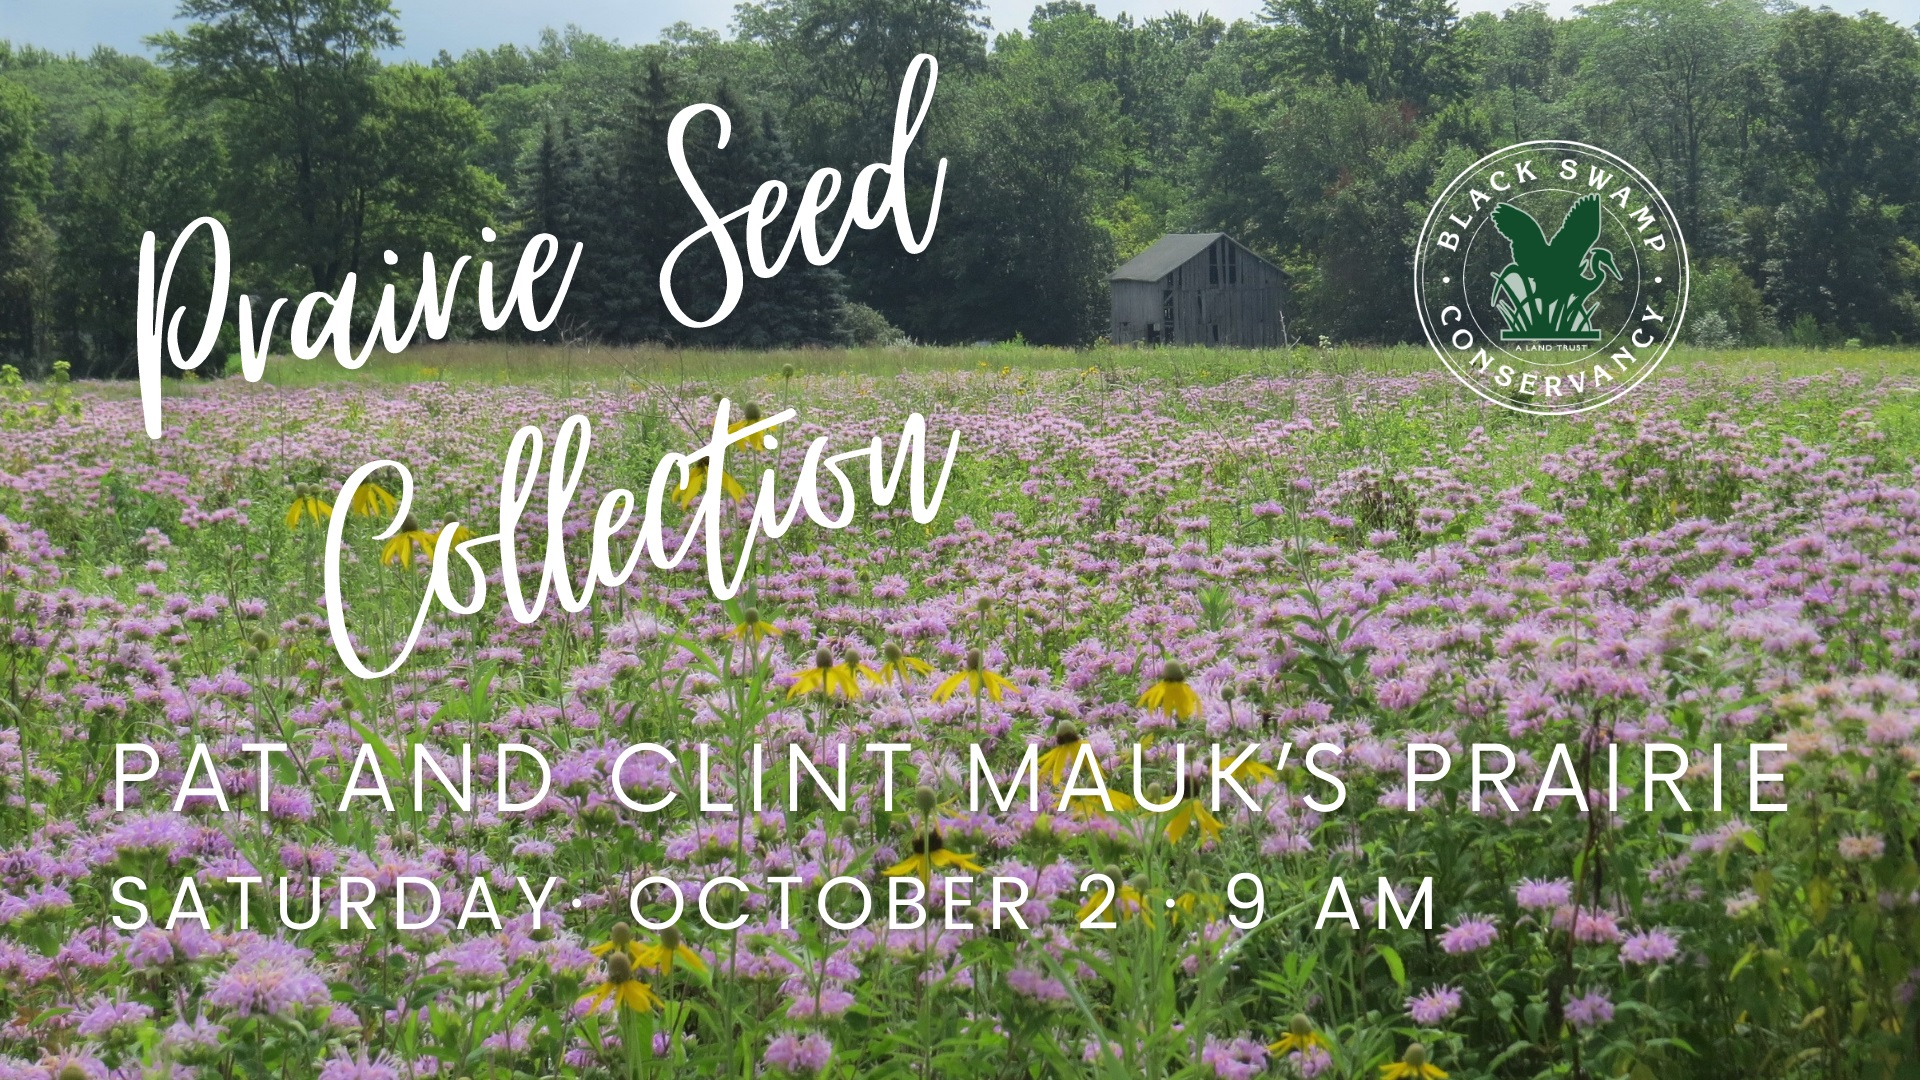 prairie seed collection event image